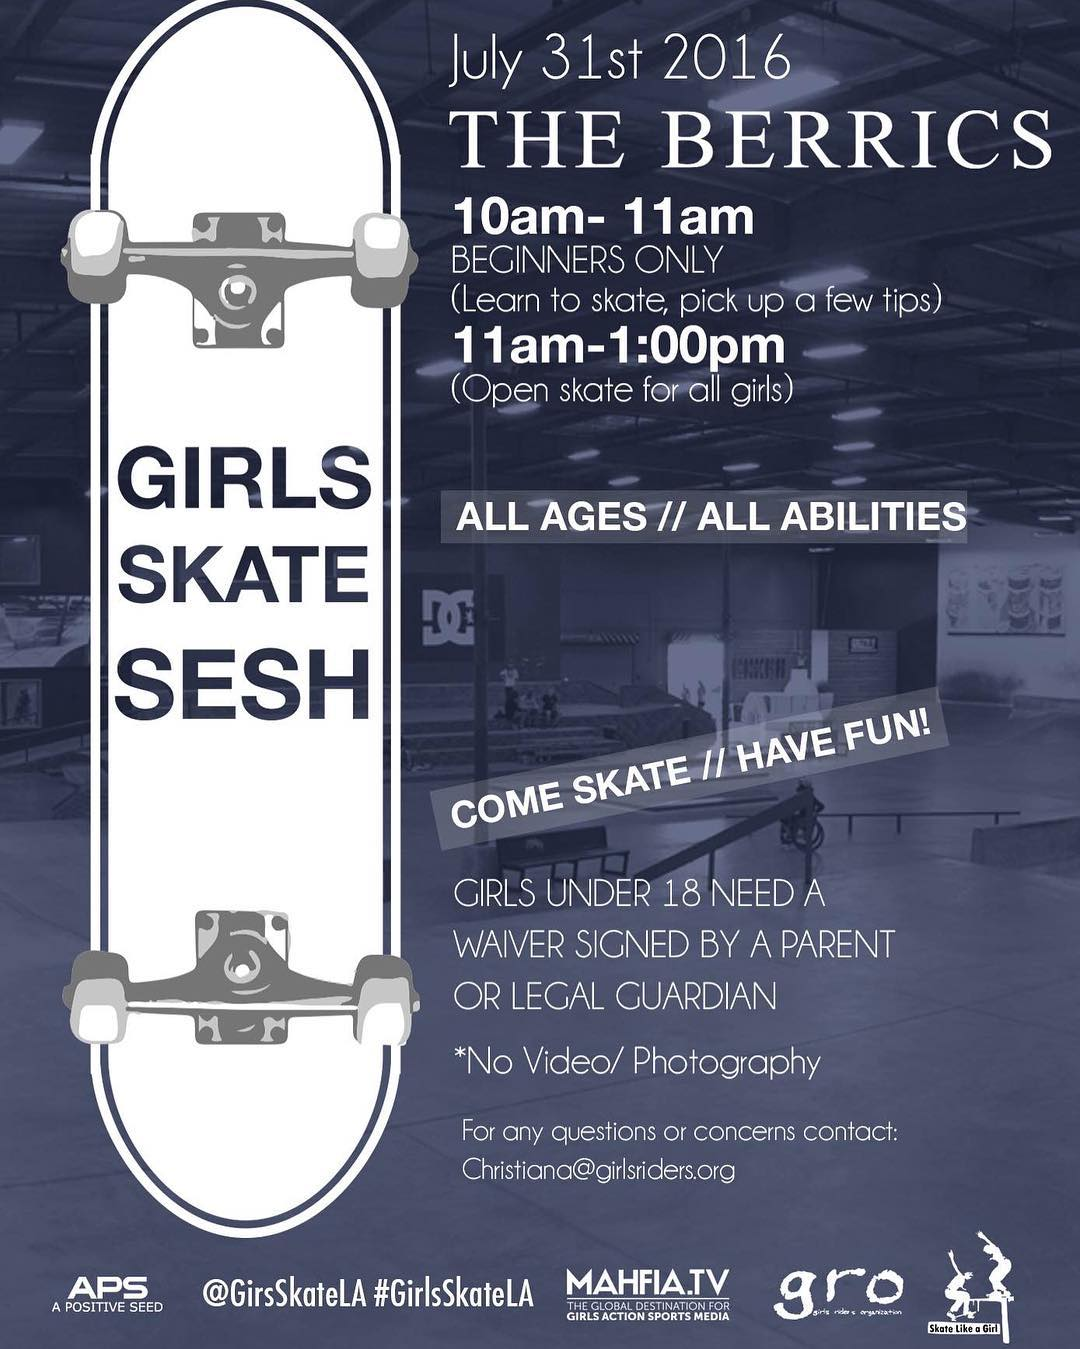 Save the date! Calling all #ladiesofshred in the greater Los Angeles area and beyond. Join @GirlsSkateLA July 31st 10am-1pm for an all girls skate session at The Berrics! From 10am - 11am there will be a beginners only session, a time for those...